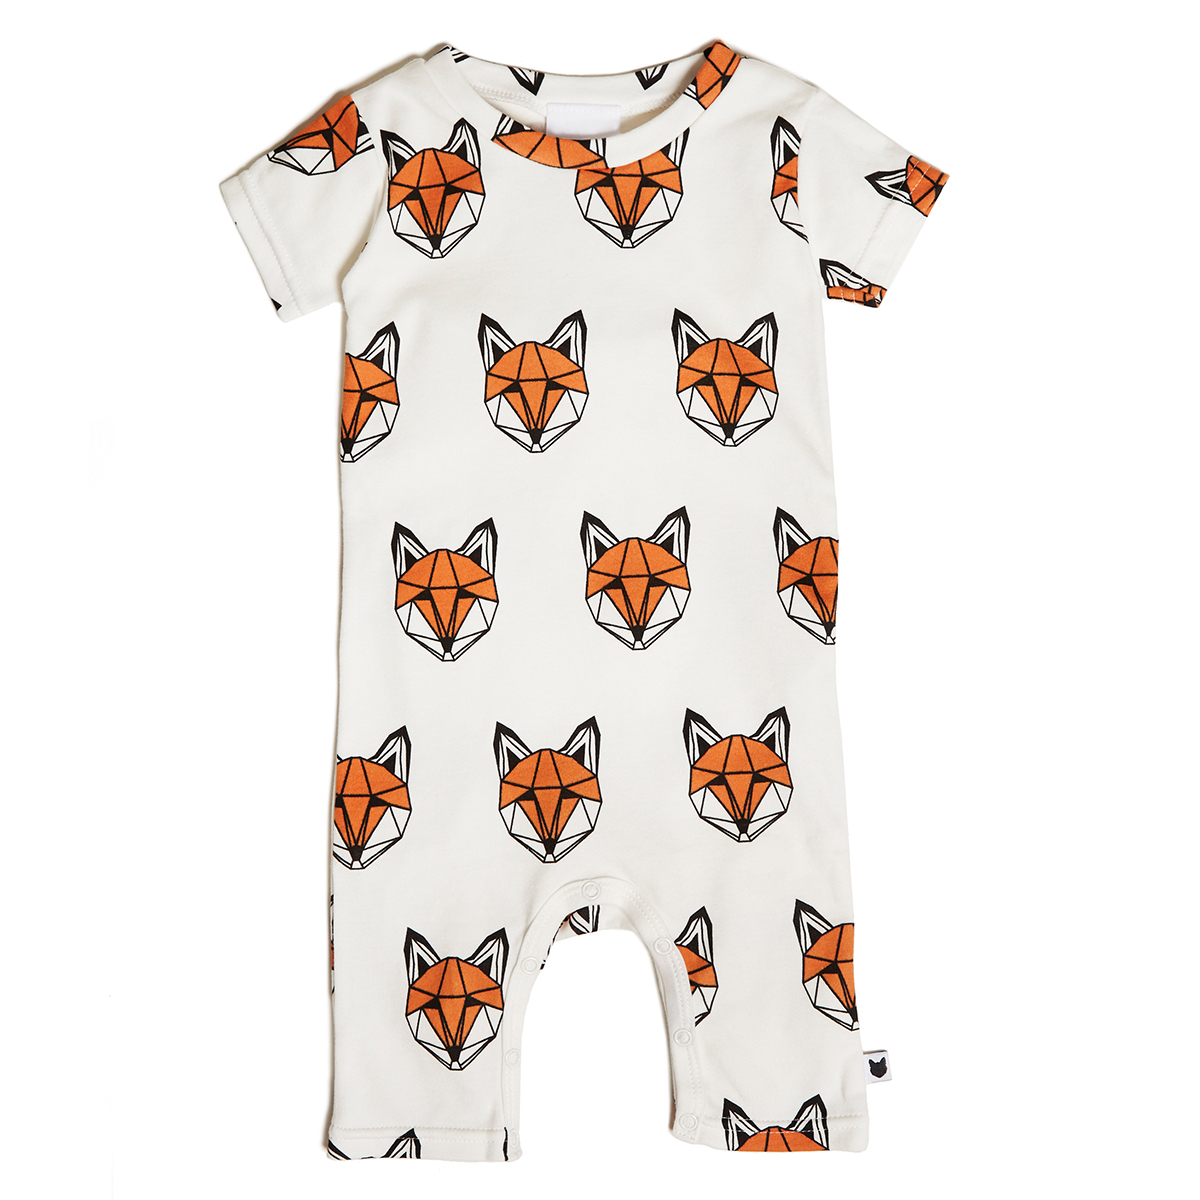 Robe & combinaison Combinaison Just Call Me Fox - 3/6 Mois Combinaison Just Call Me Fox - 3/6 Mois